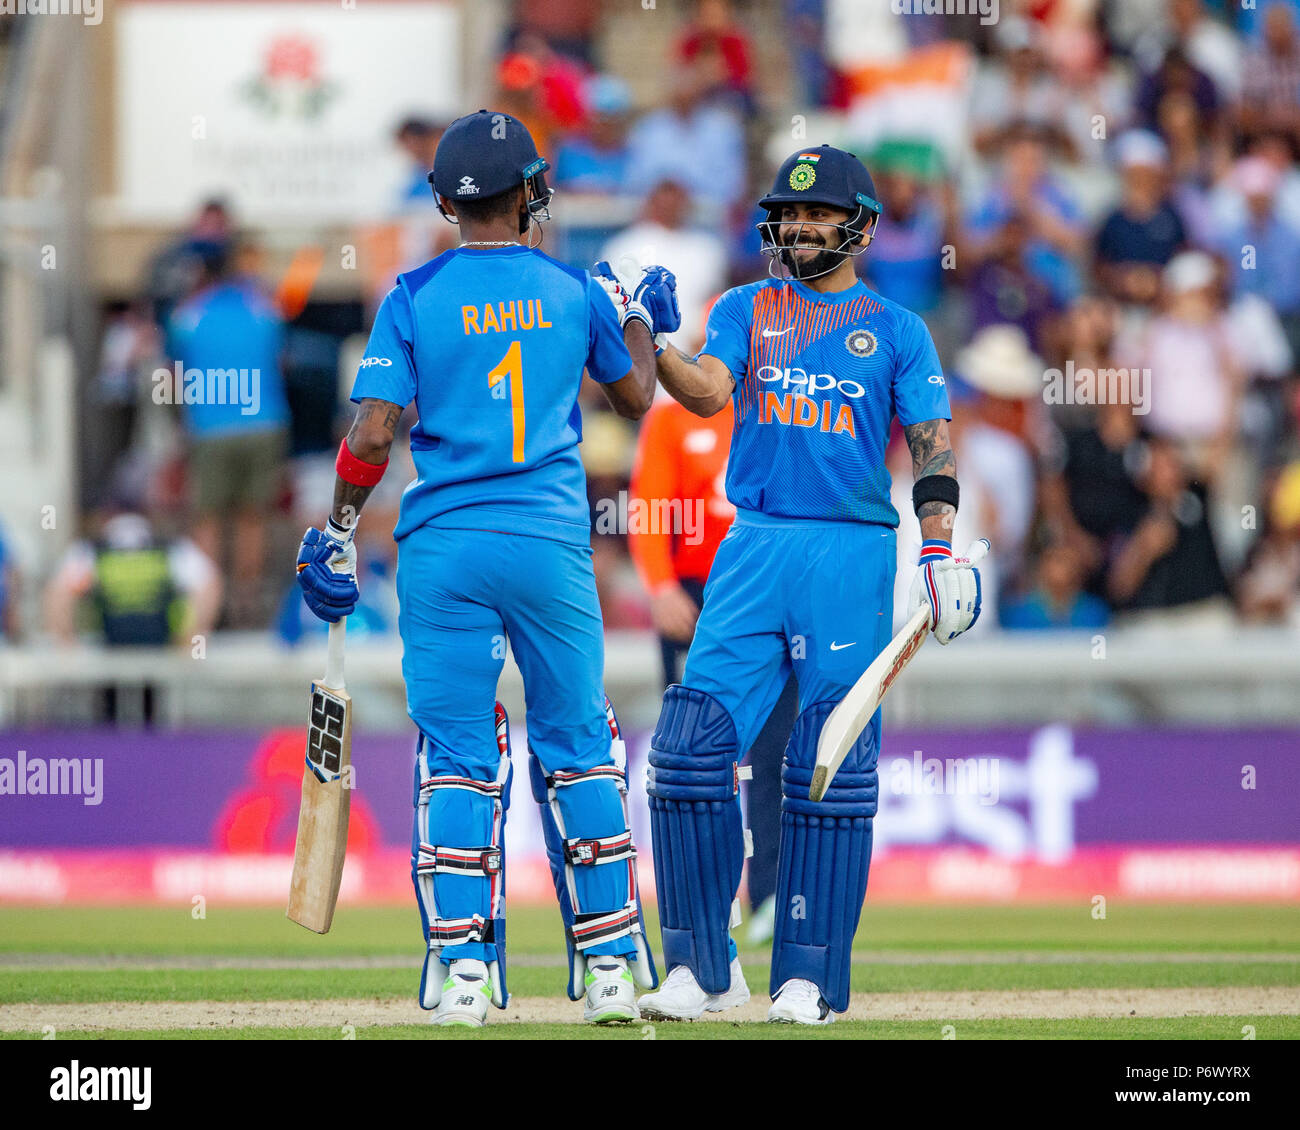 Manchester, UK. 3rd of July 2018 , Emirates Old Trafford, Manchester, England, 1st IT20, Vitality IT20 Series, England v India; Virat Kohli of India and KL Rahul of India celebrates their win over England Credit: News Images /Alamy Live News - Stock Image